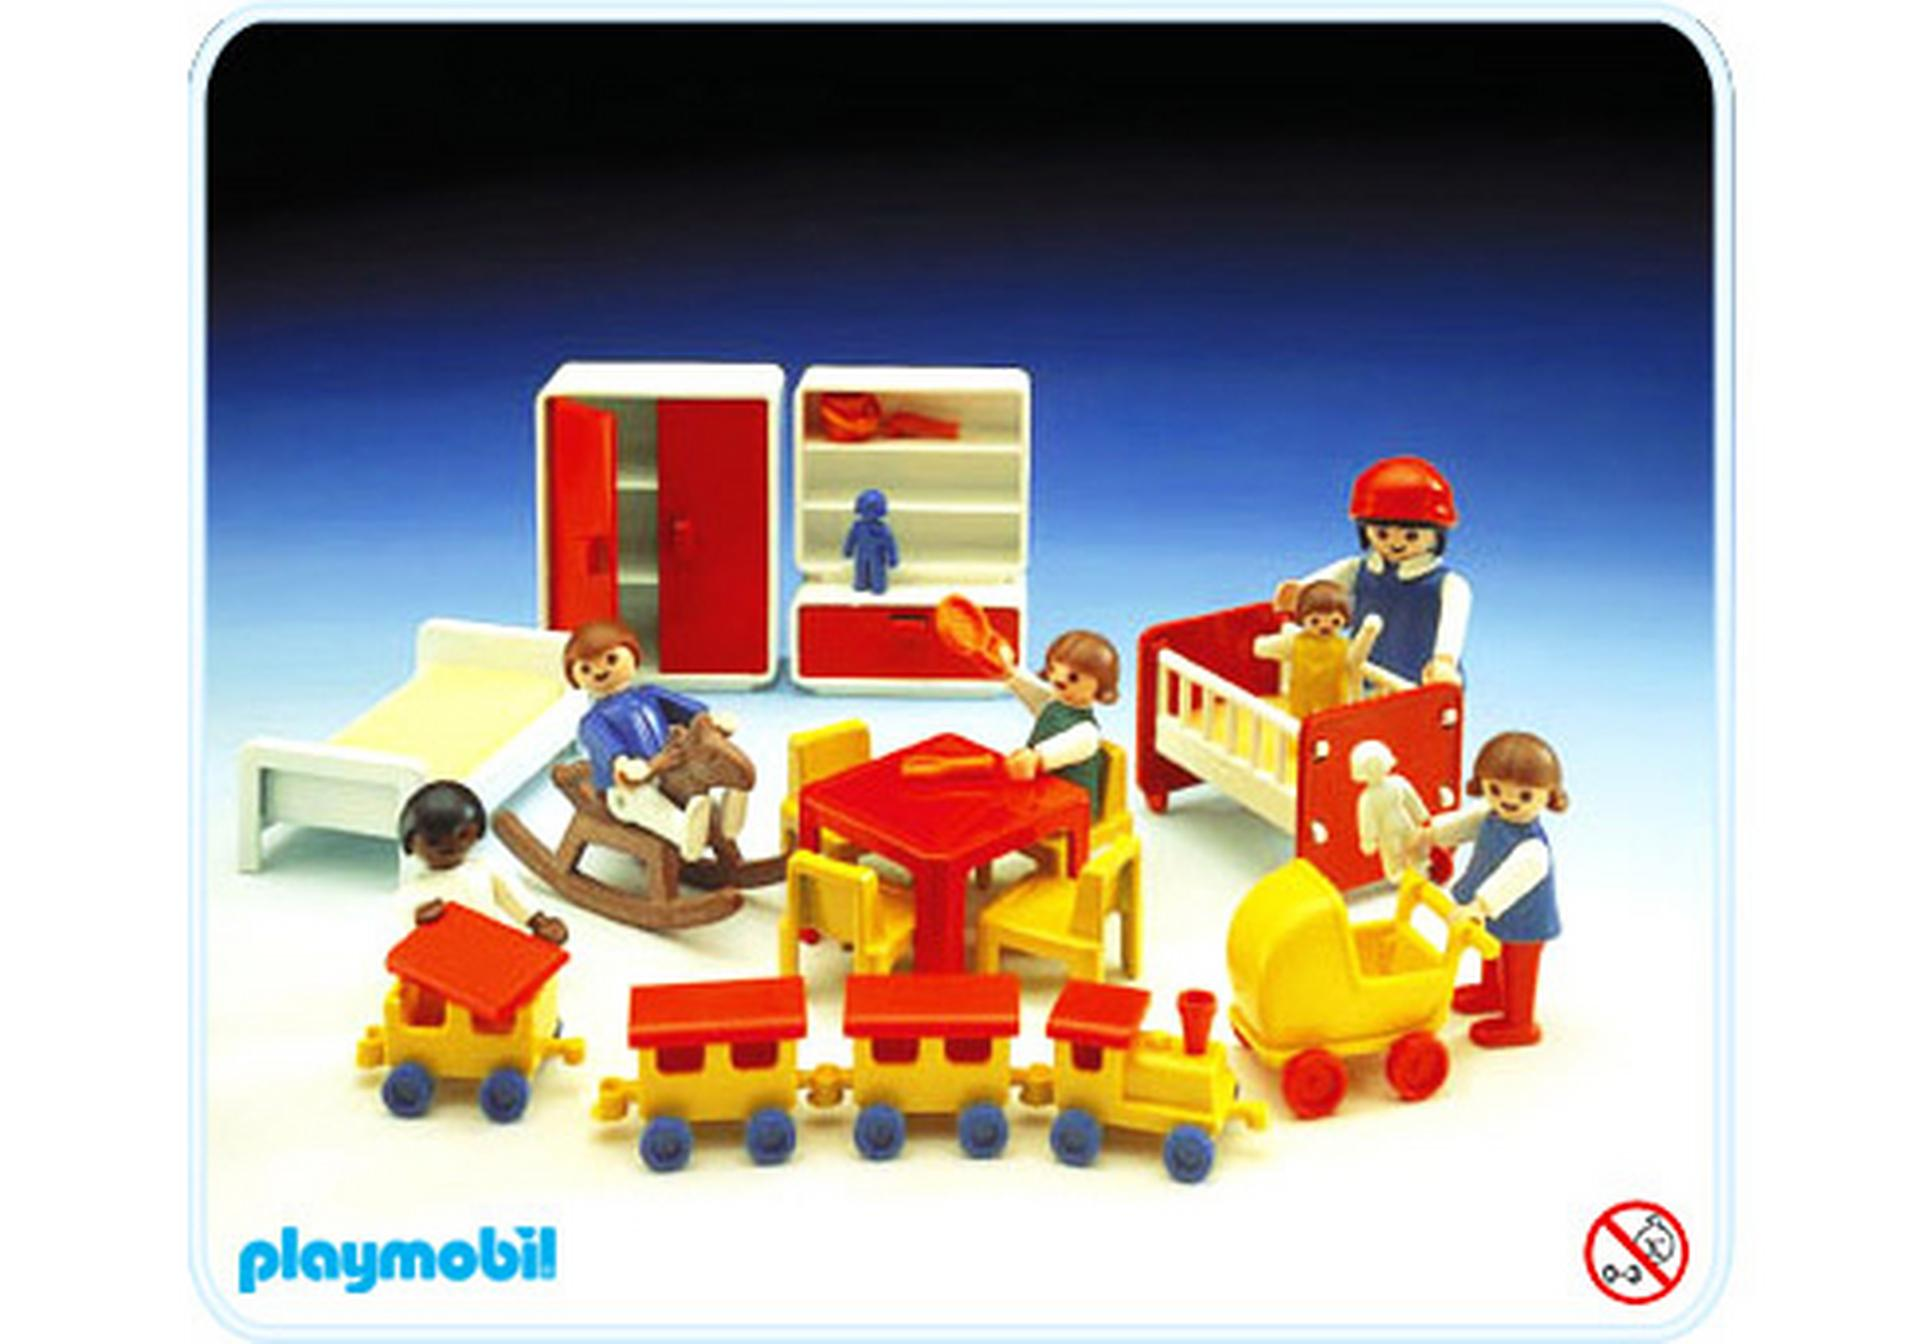 Kinderzimmer 3290 a playmobil deutschland for Kinderzimmer playmobil